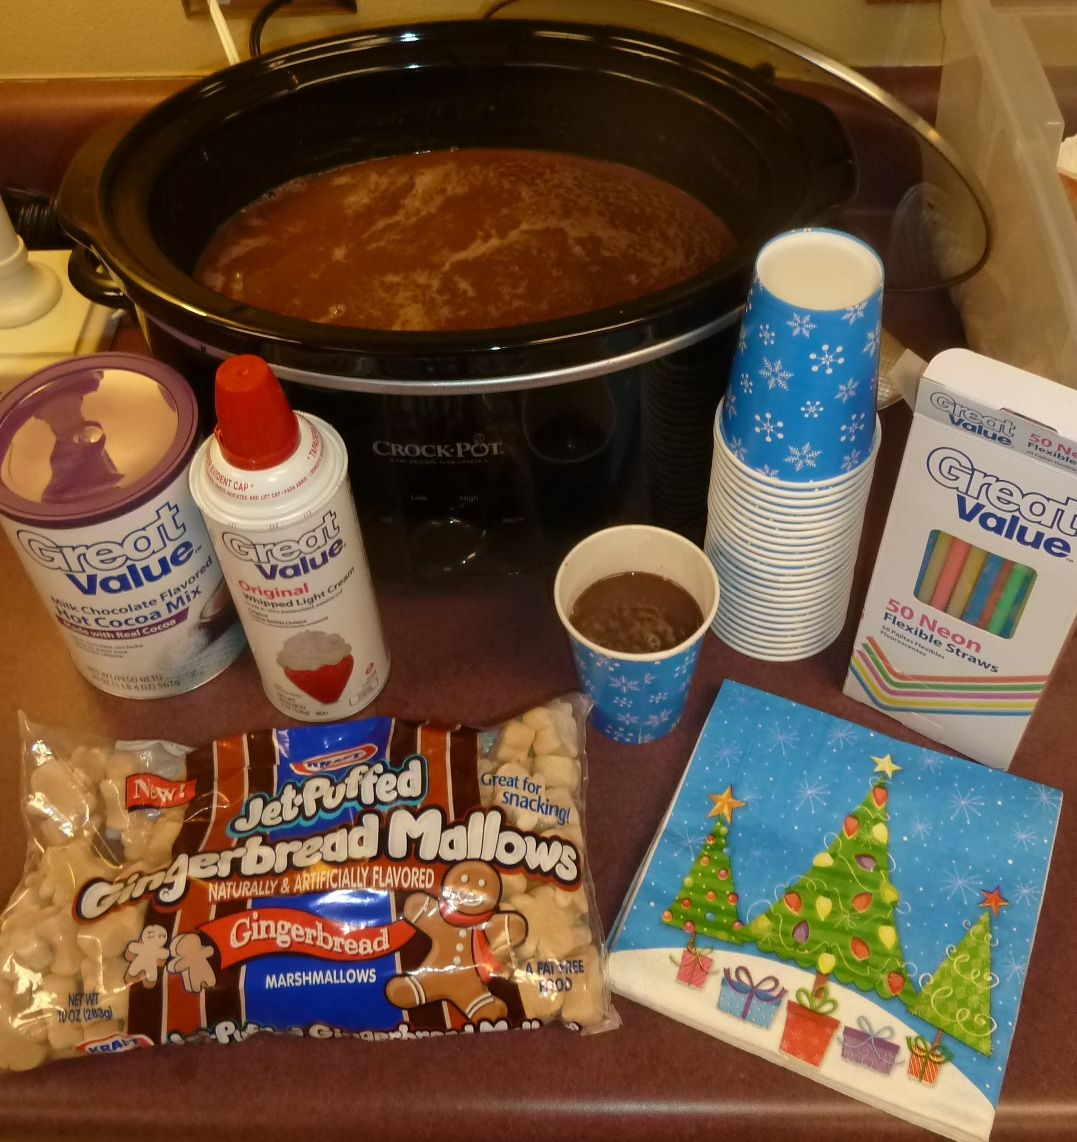 Polar Express Day Hot Cocoa In The Crockpot